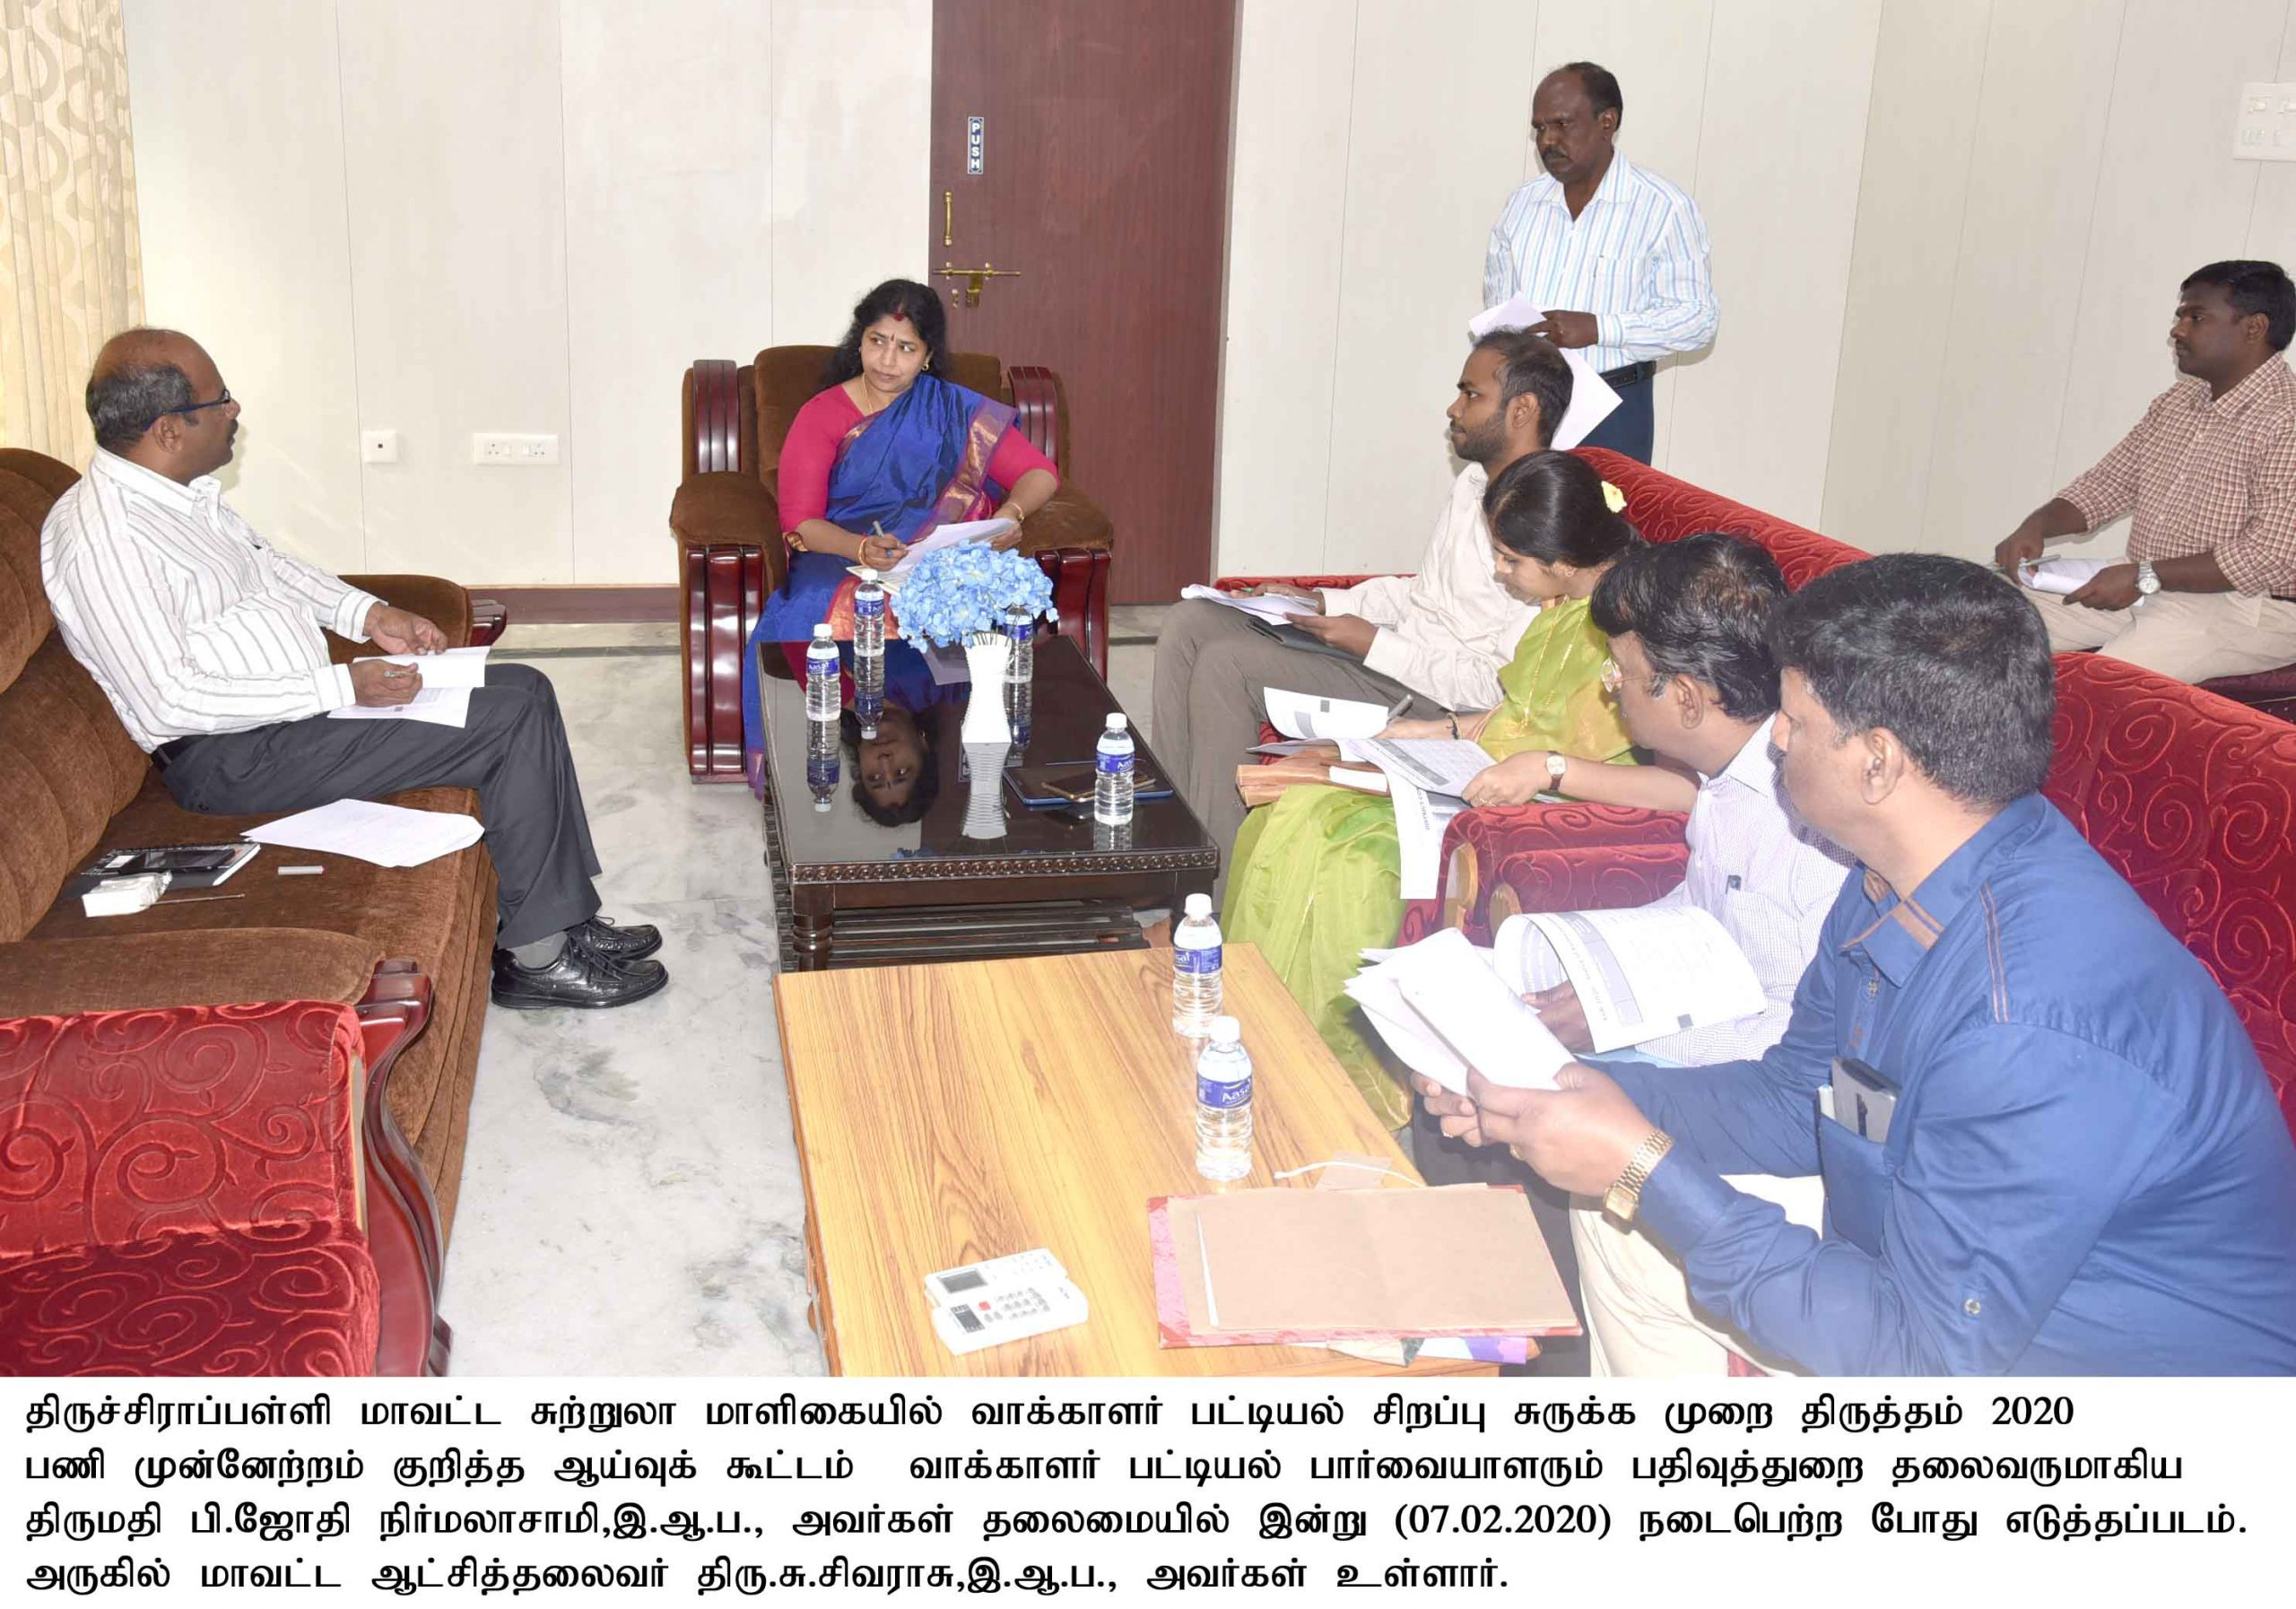 Electoral Roll Observer review held on 07/02/2020